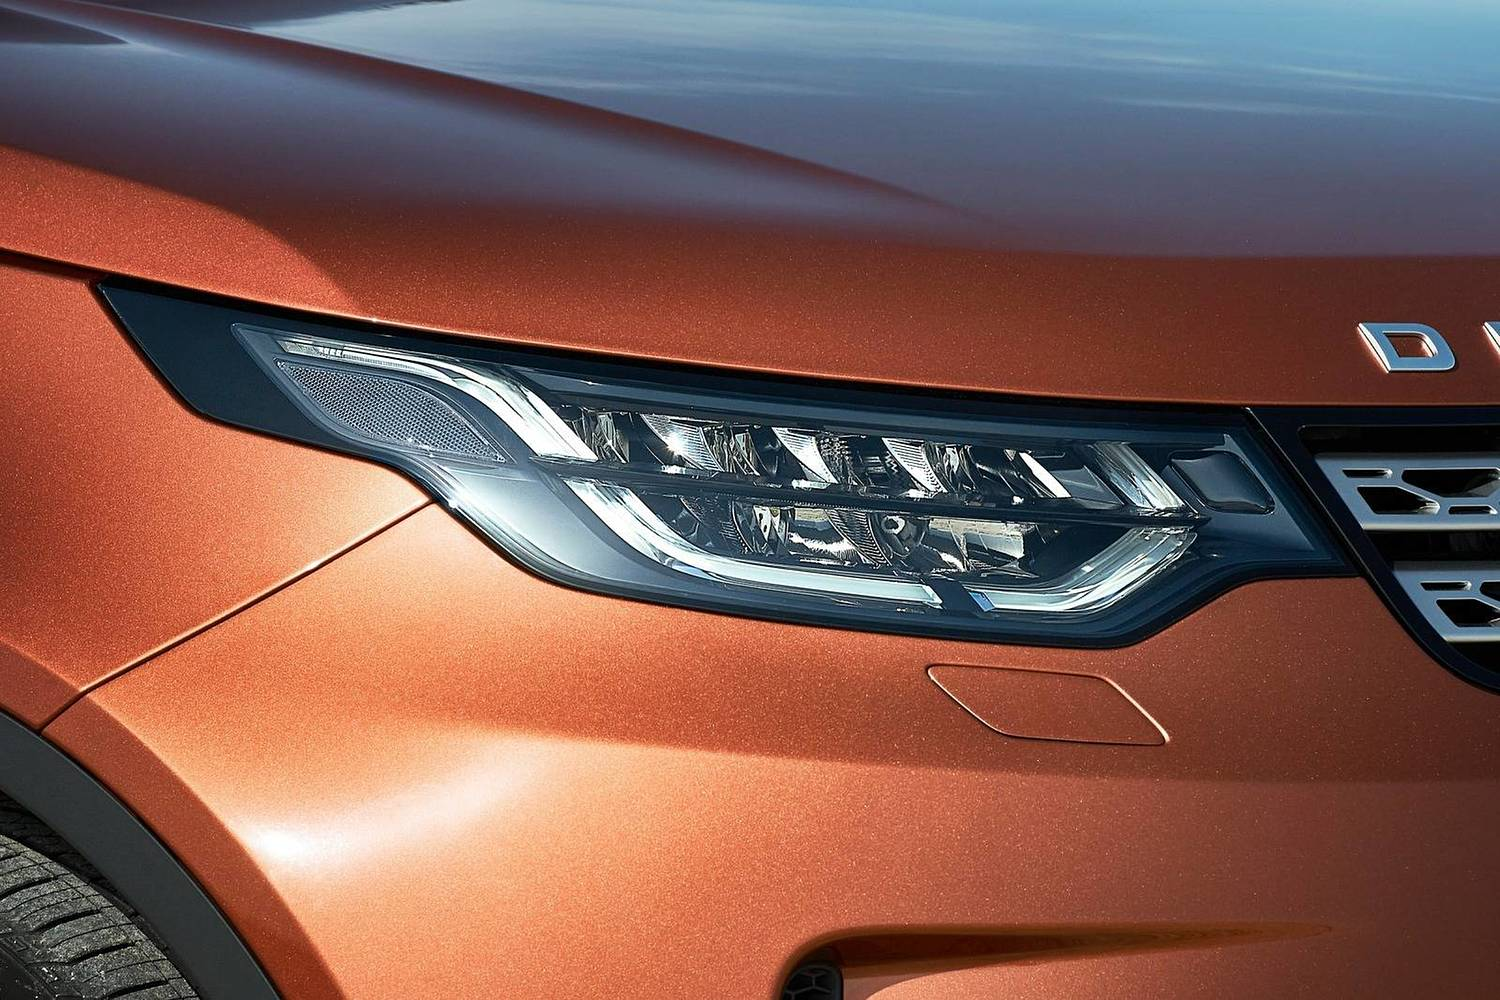 Land Rover Discovery HSE Td6 4dr SUV Headlamp Detail (2017 model year shown)